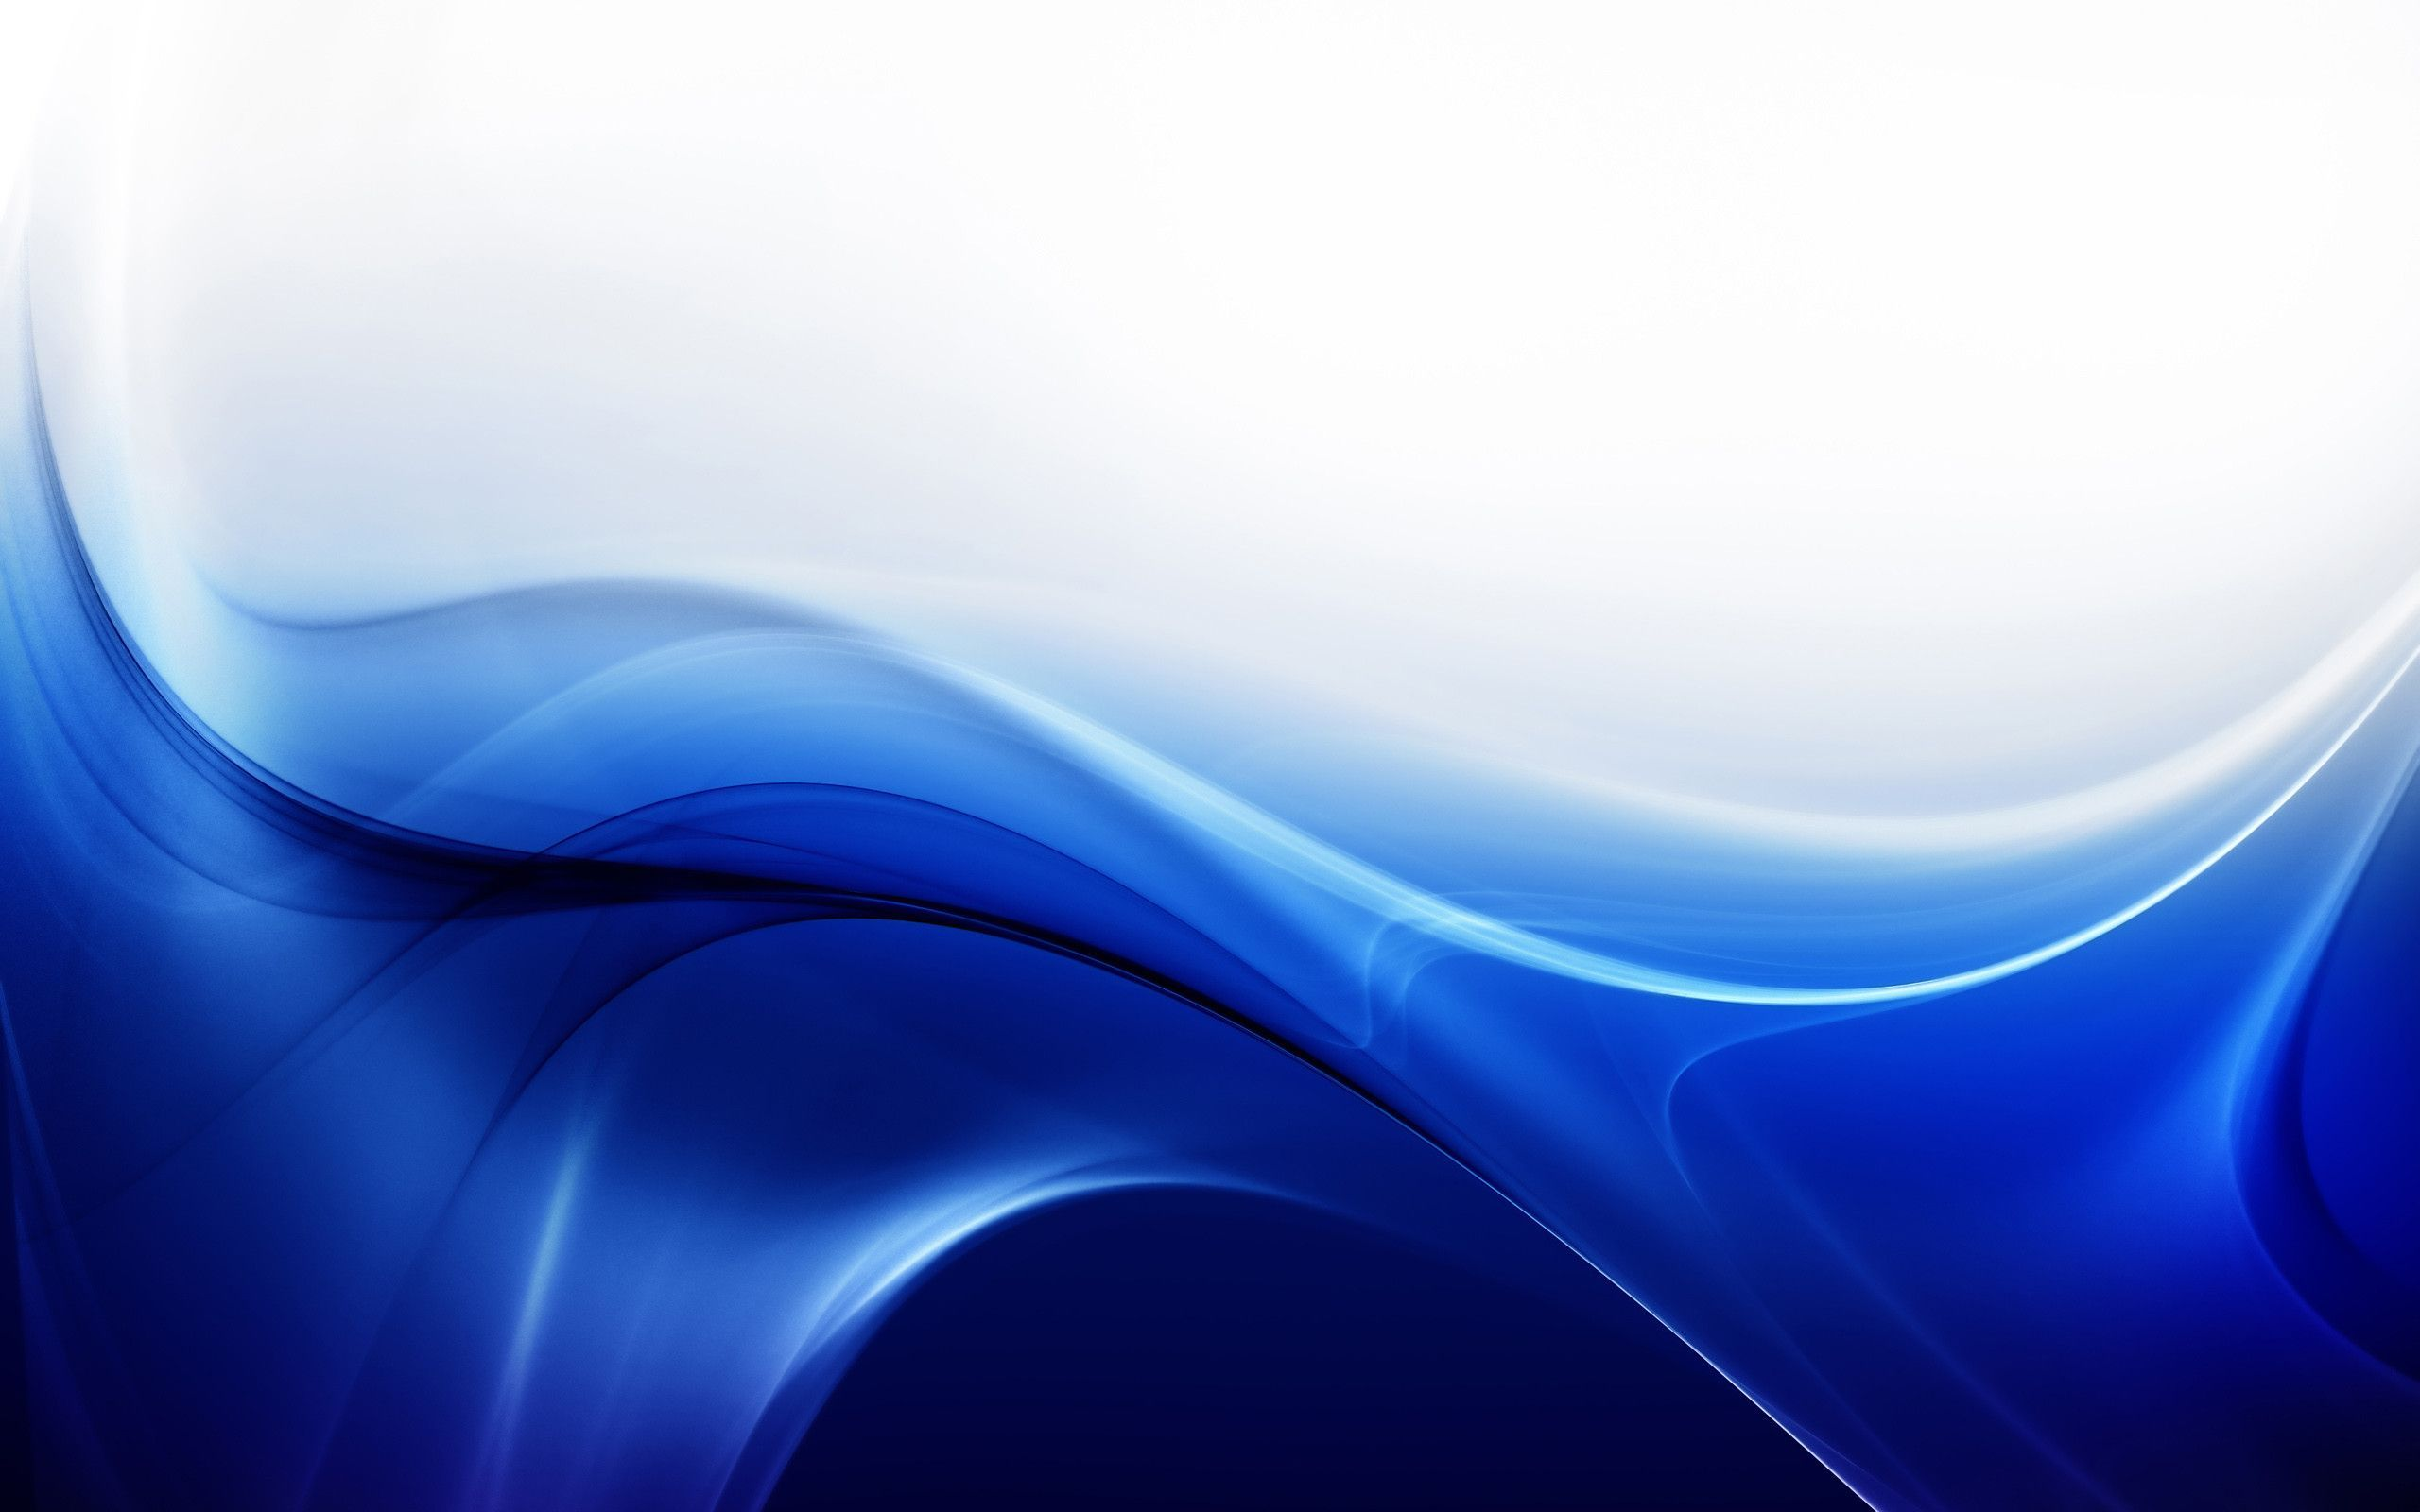 White And Blue Abstract Wallpaper High Definition On Wallpaper 1080p Hd Abstract Wallpaper Design Abstract Abstract Wallpaper